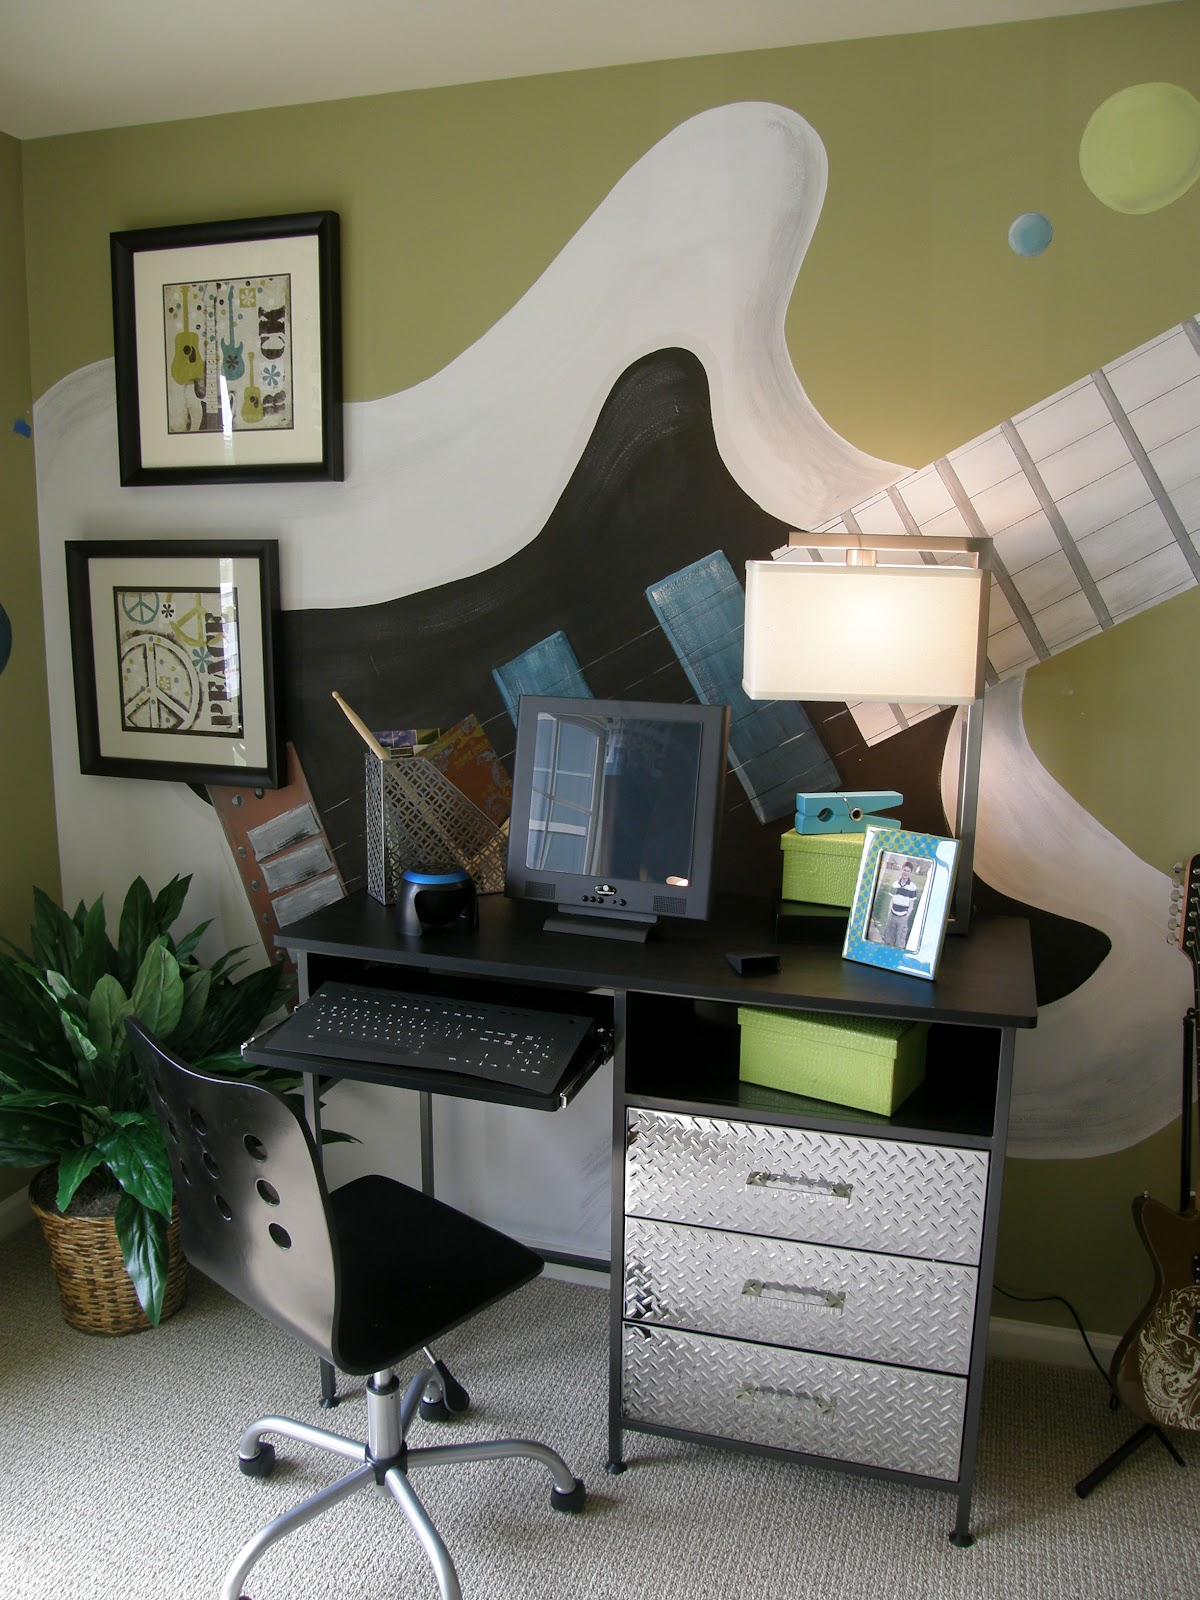 Jam session teen bedroom design dazzle for Boys bedroom wall ideas